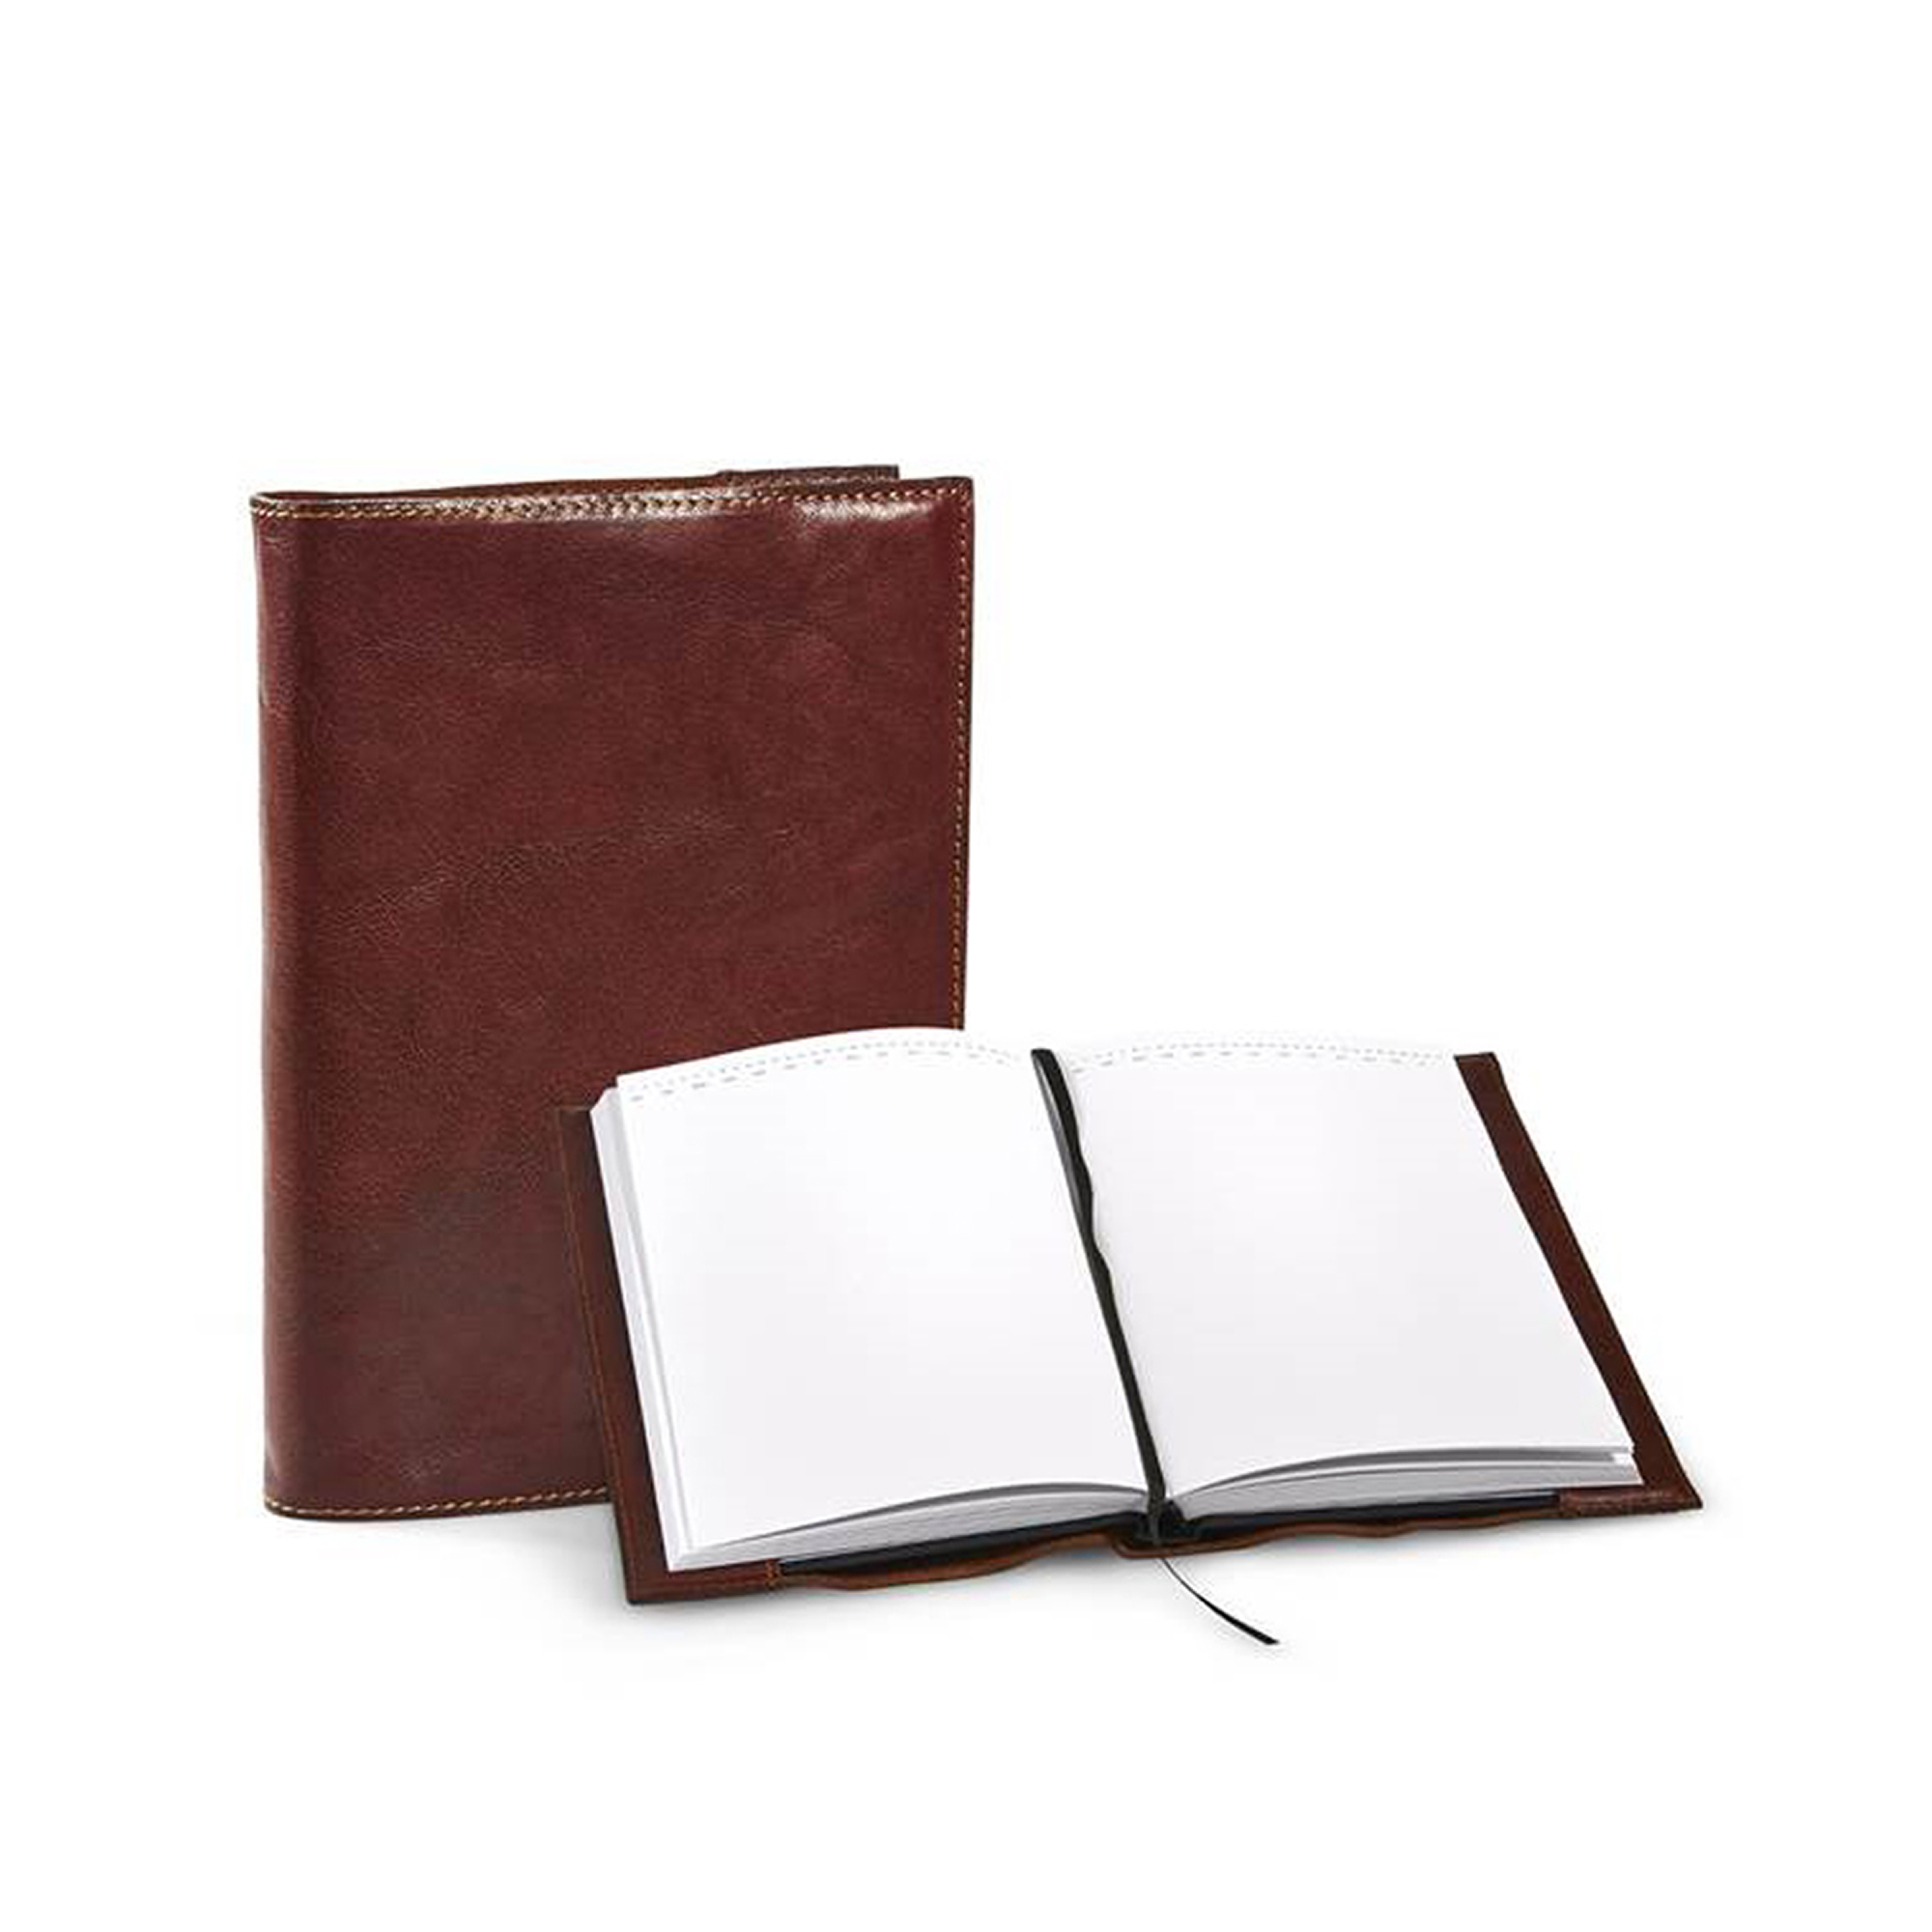 Exclusive notebook with blank pages. Book cover of waxed buffalo leather. The book can be replaced when it is full written.